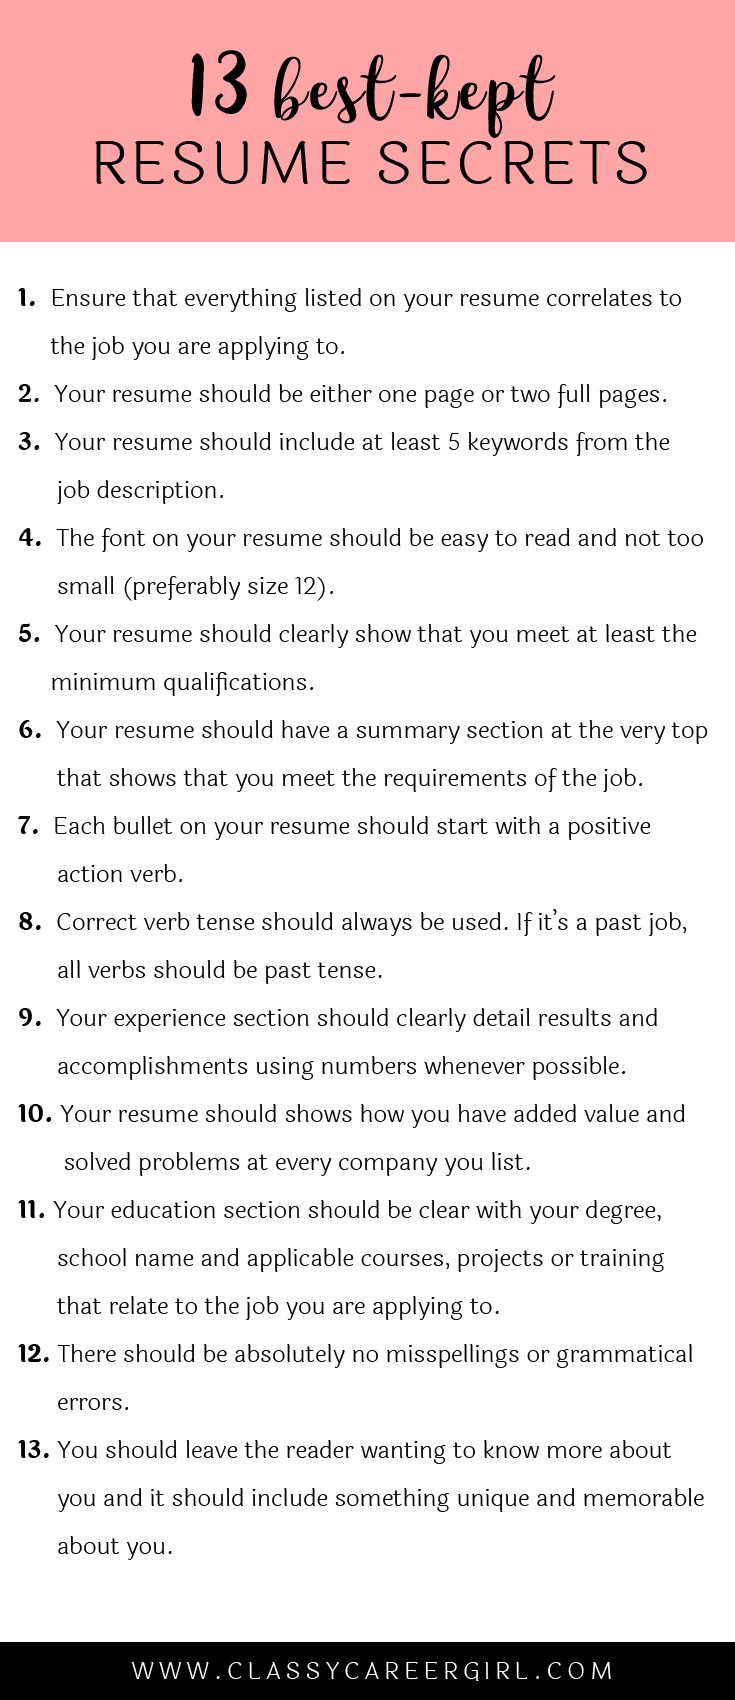 Opposenewapstandardsus  Seductive  Ideas About Resume On Pinterest  Cv Format Resume Cv And  With Engaging Some Hiring Managers Will Toss Your Resume Out If You Dont Know These  With Amusing Free Printable Resume Wizard Also Copy Paste Resume In Addition Sample Resume For Secretary And Online Resume Writer As Well As Laboratory Skills Resume Additionally Resume Templates For Pages Mac From Pinterestcom With Opposenewapstandardsus  Engaging  Ideas About Resume On Pinterest  Cv Format Resume Cv And  With Amusing Some Hiring Managers Will Toss Your Resume Out If You Dont Know These  And Seductive Free Printable Resume Wizard Also Copy Paste Resume In Addition Sample Resume For Secretary From Pinterestcom